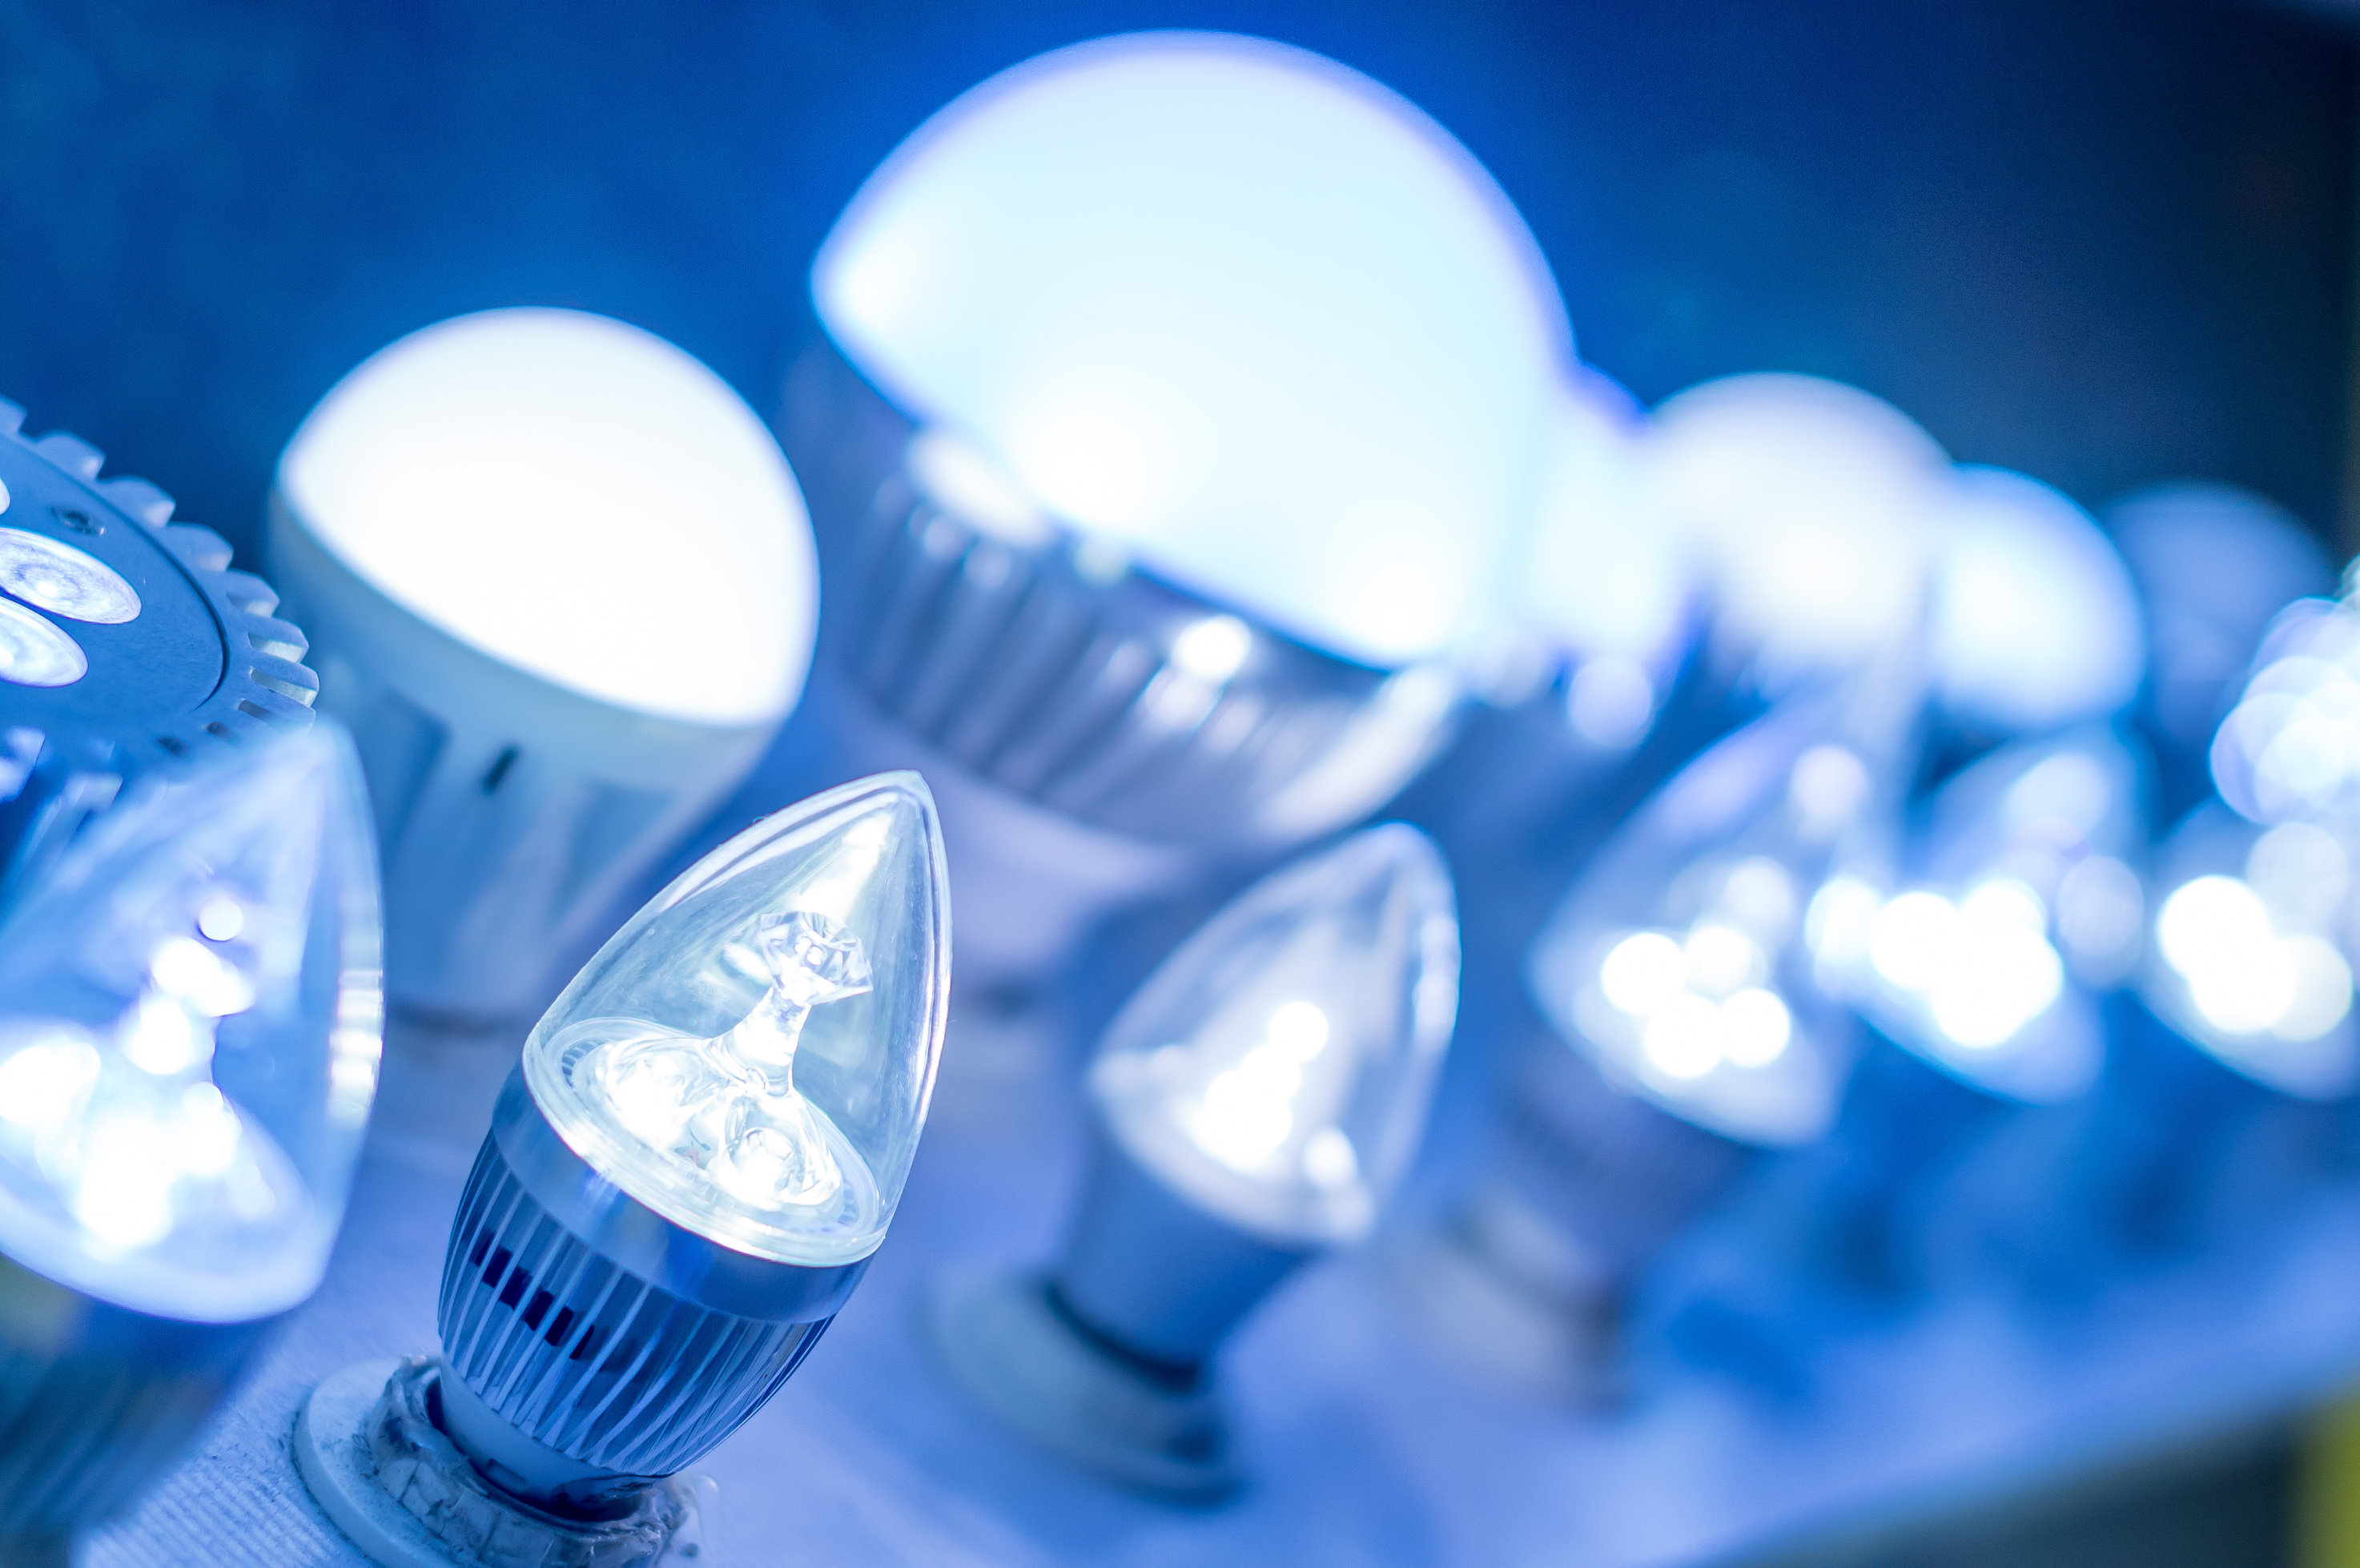 Artificial lights are considered an environmental pollutant that throw off circadian rhythms and threaten nocturnal animals.